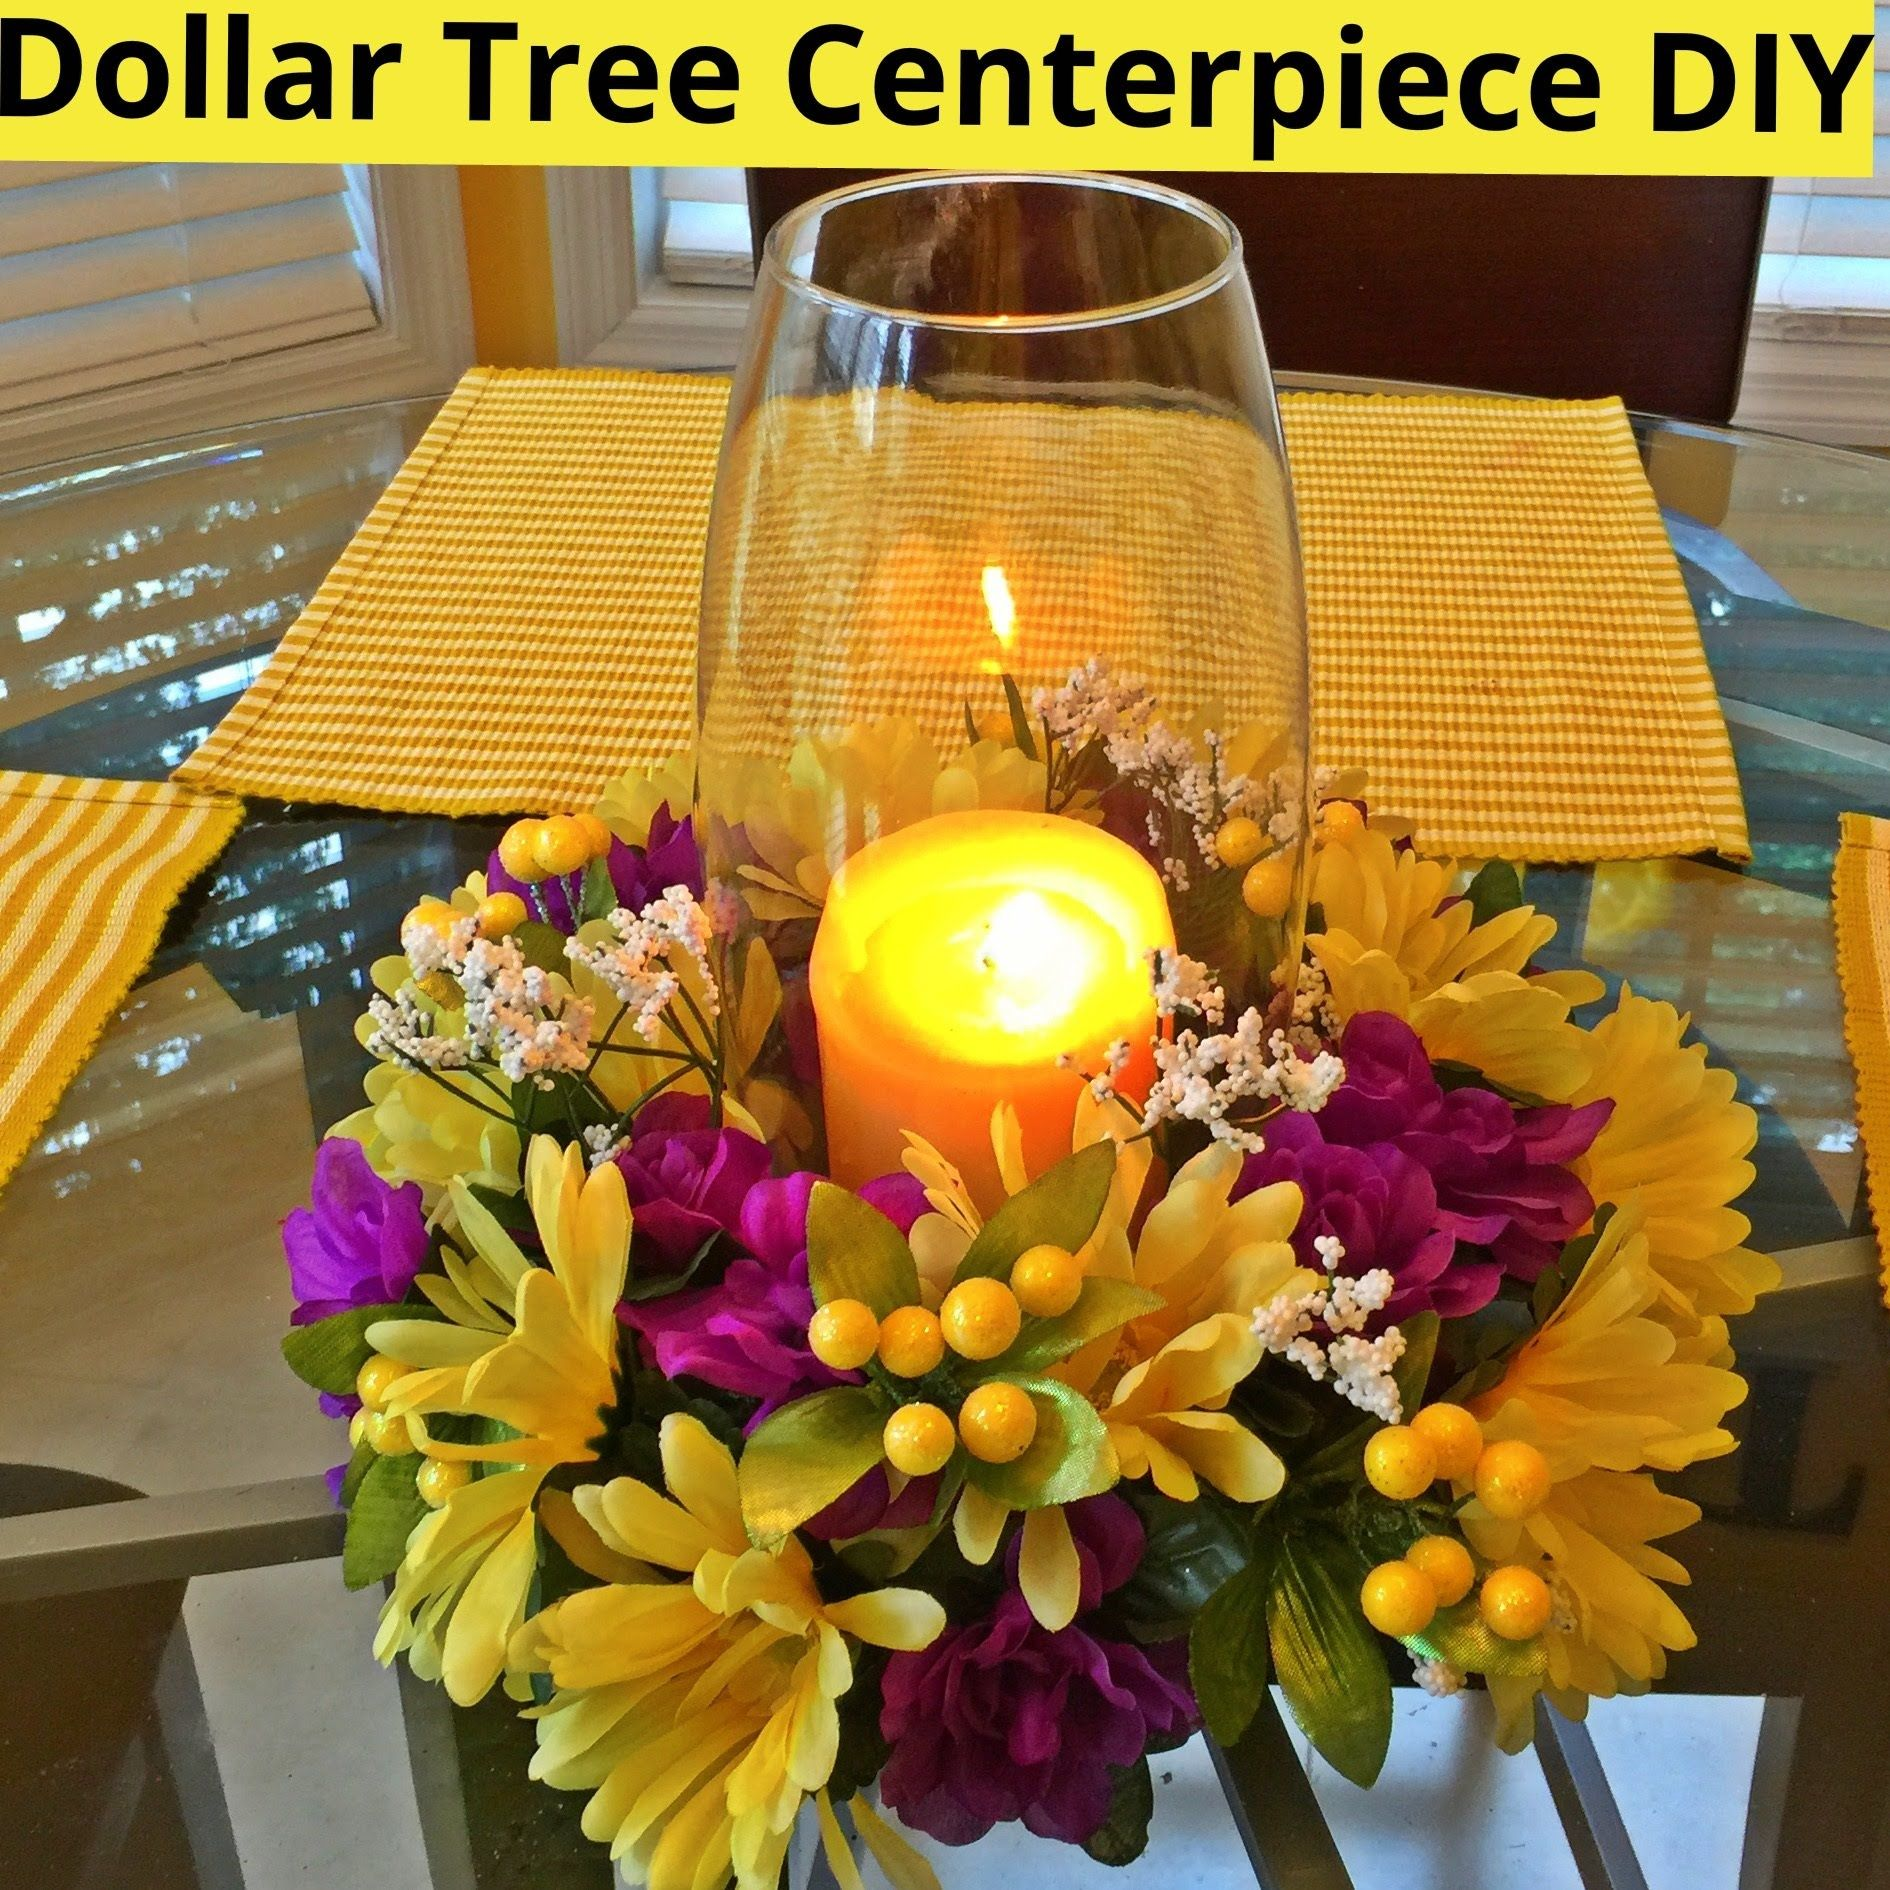 Dollar Tree centerpiece DIY YouTube … Dollar tree